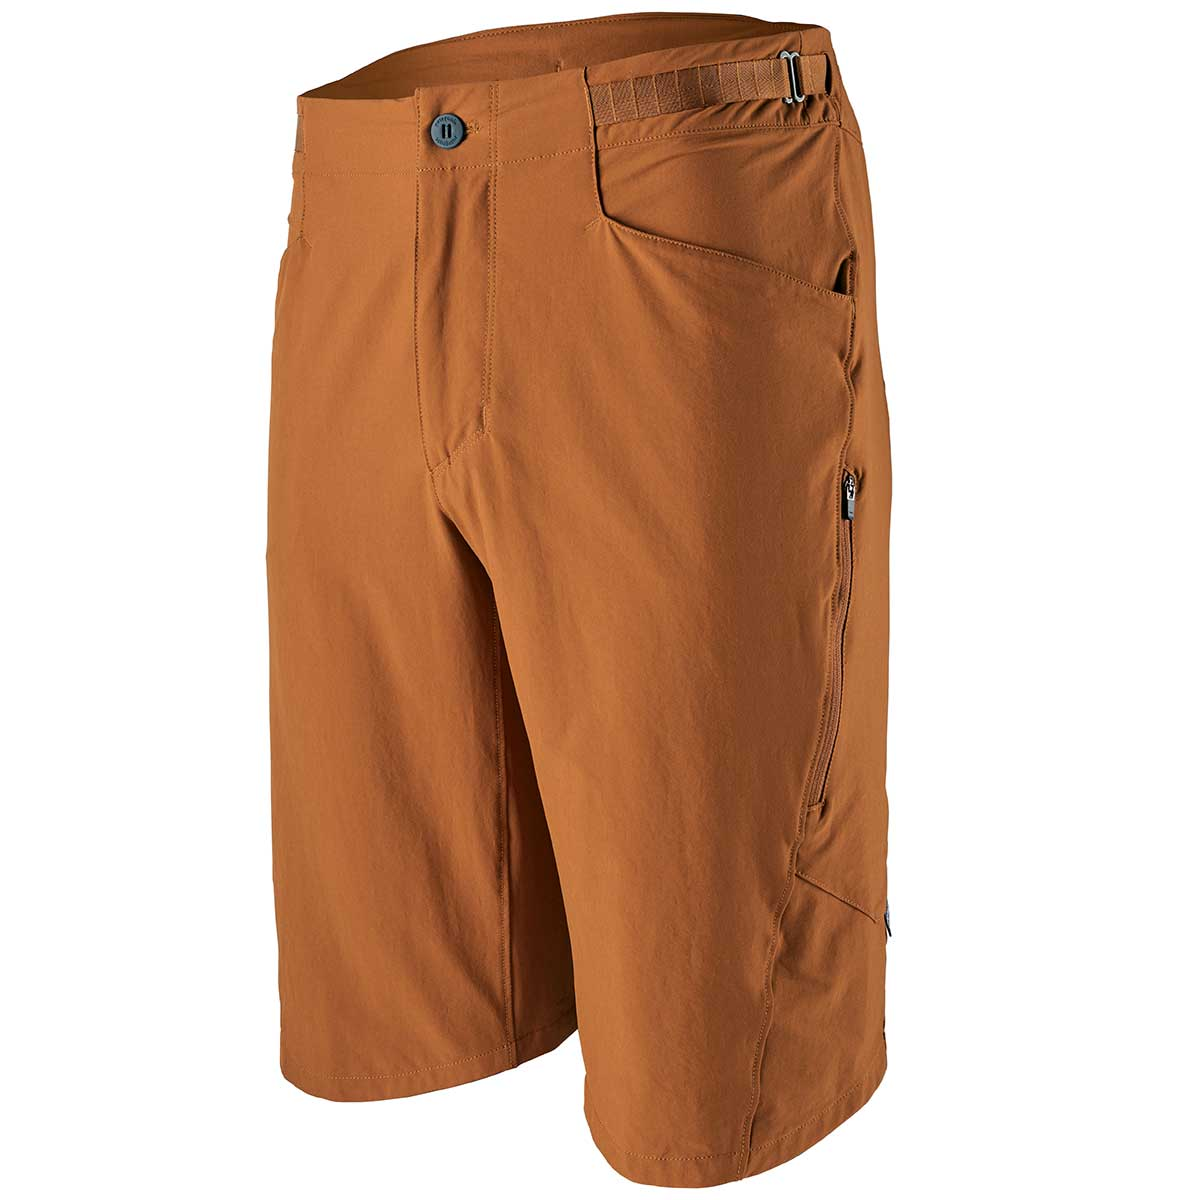 Patagonia men's Dirt Craft Bike Short in Wood Brown front view